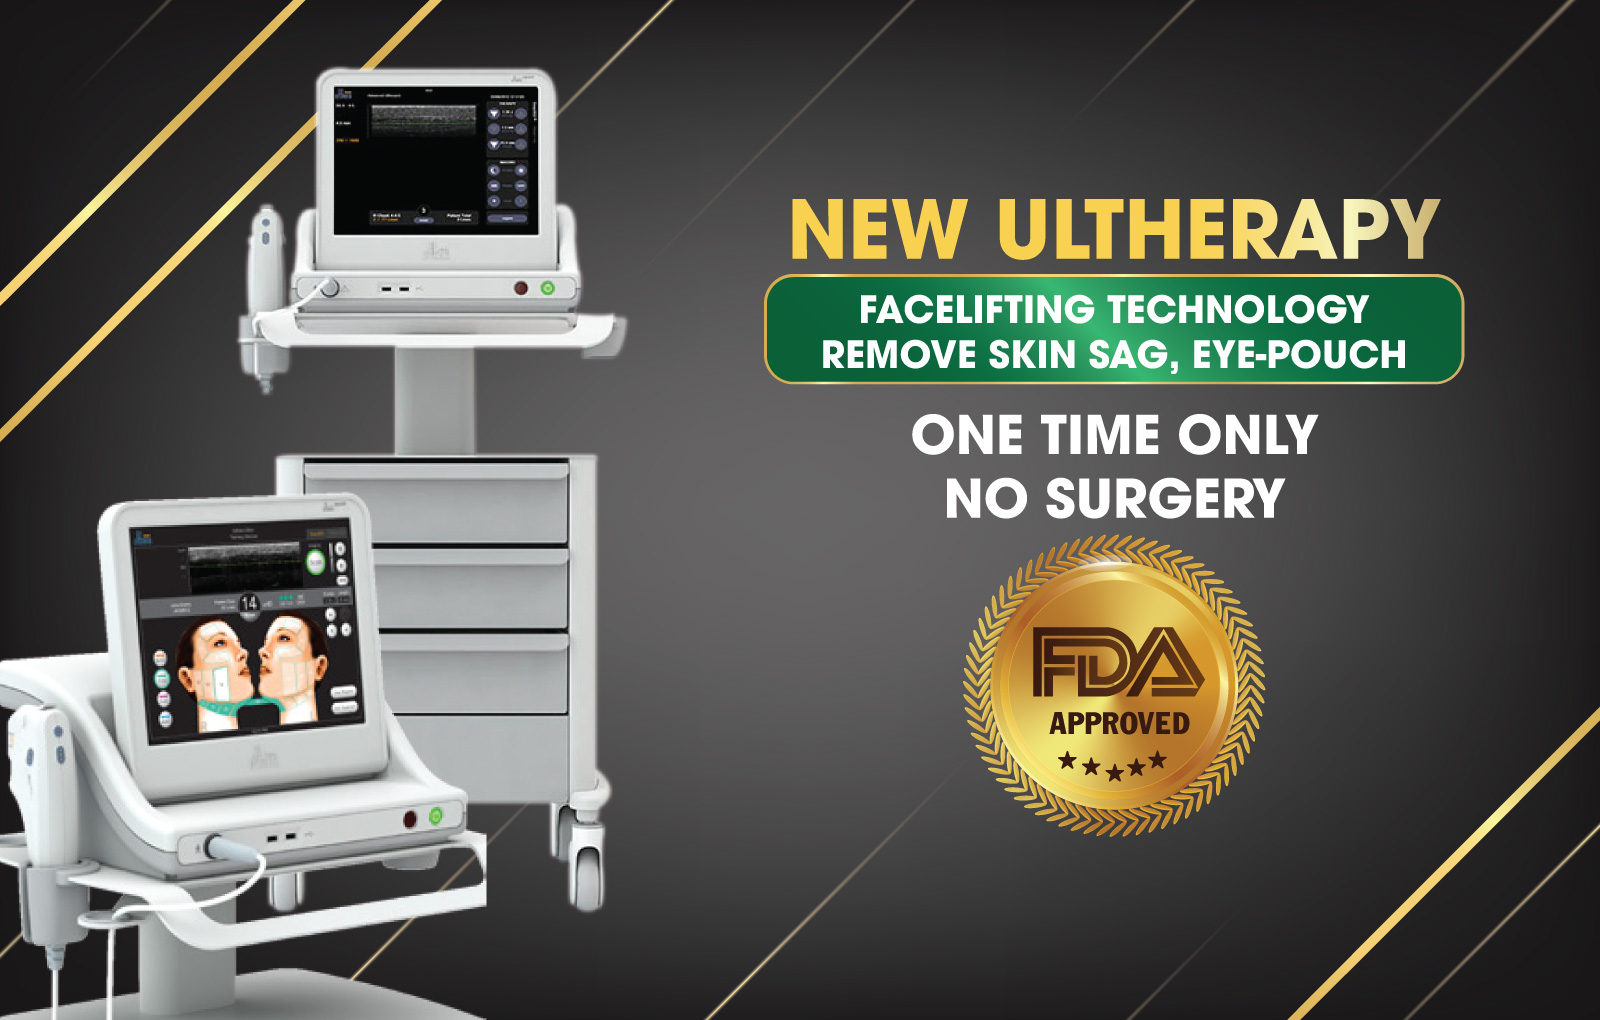 V-LINE FACELIFT BY NEW ULTHERAPY TECHNOLOGY